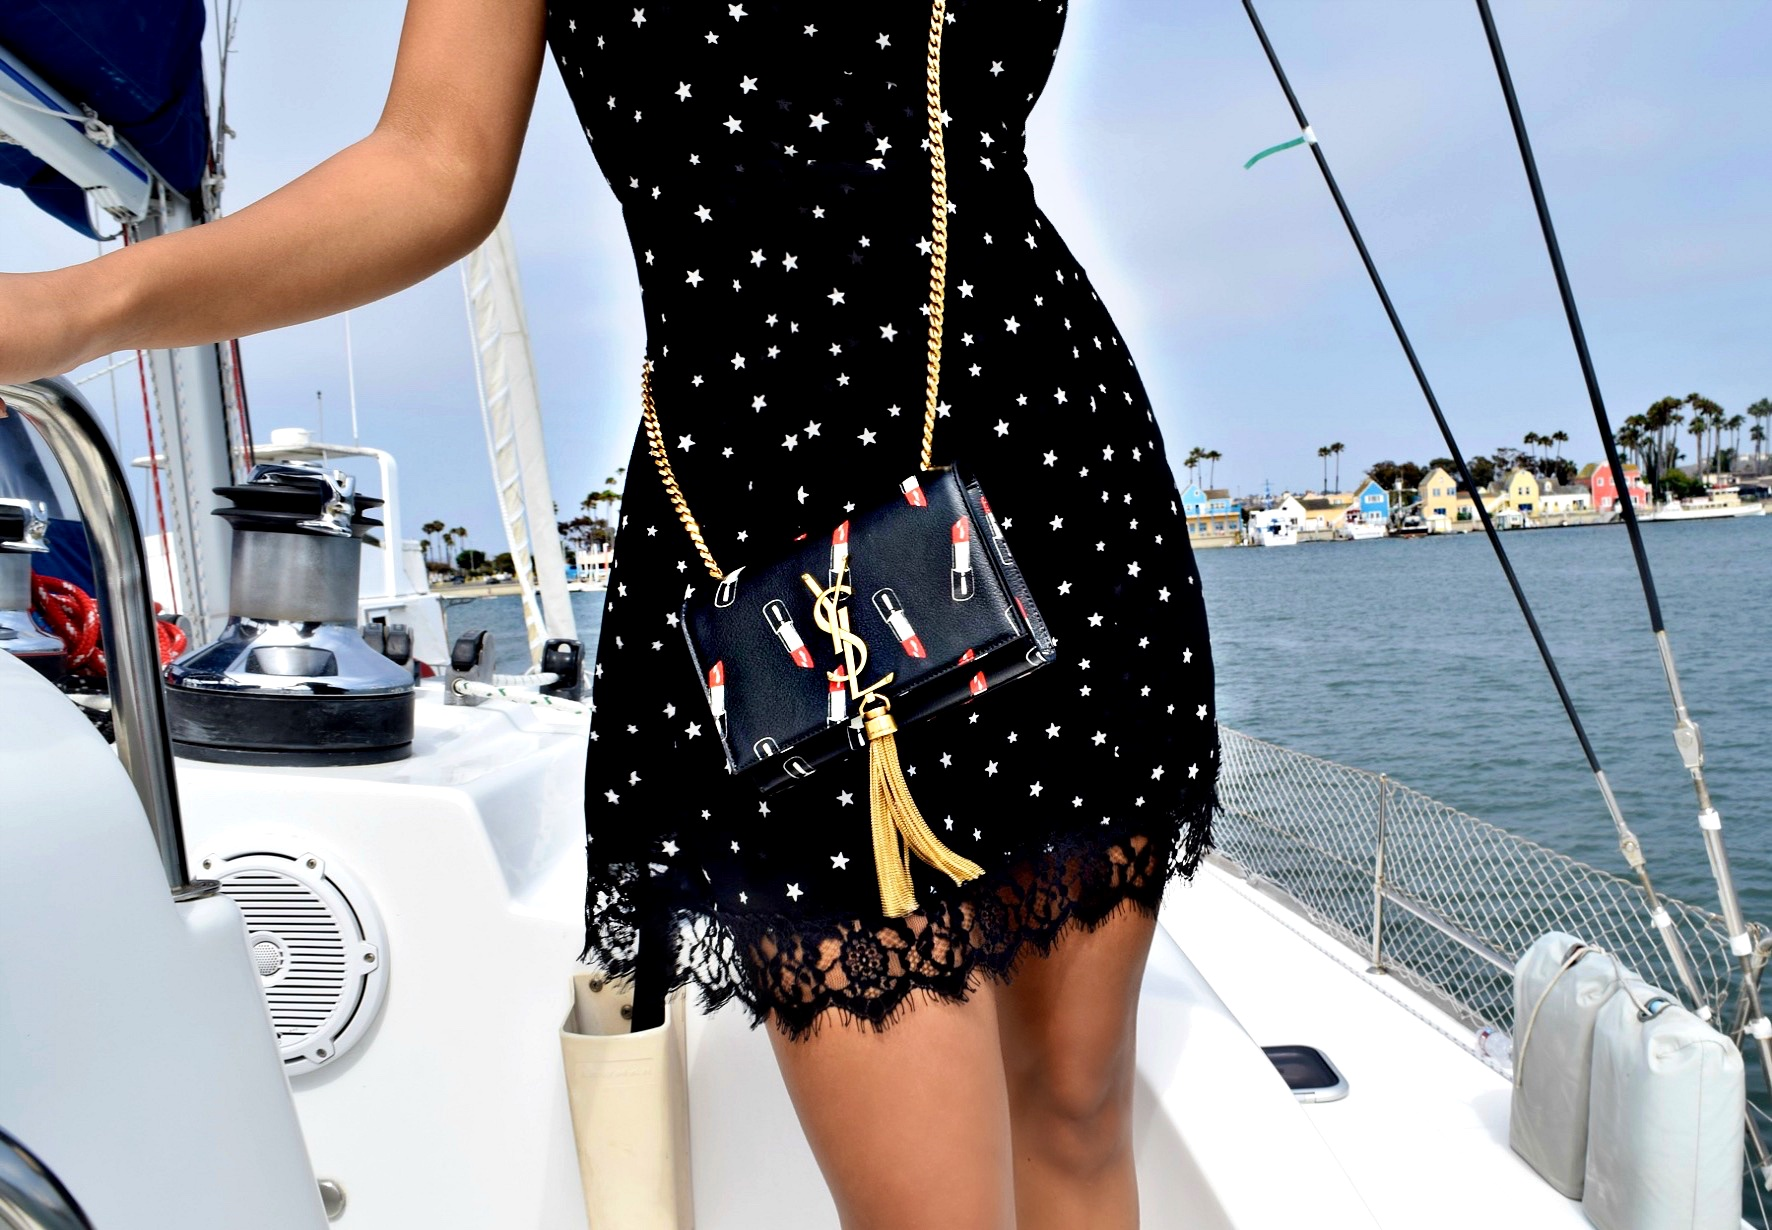 Reformation Dress & YSL Crossbody Bag Details: To Style, With Love